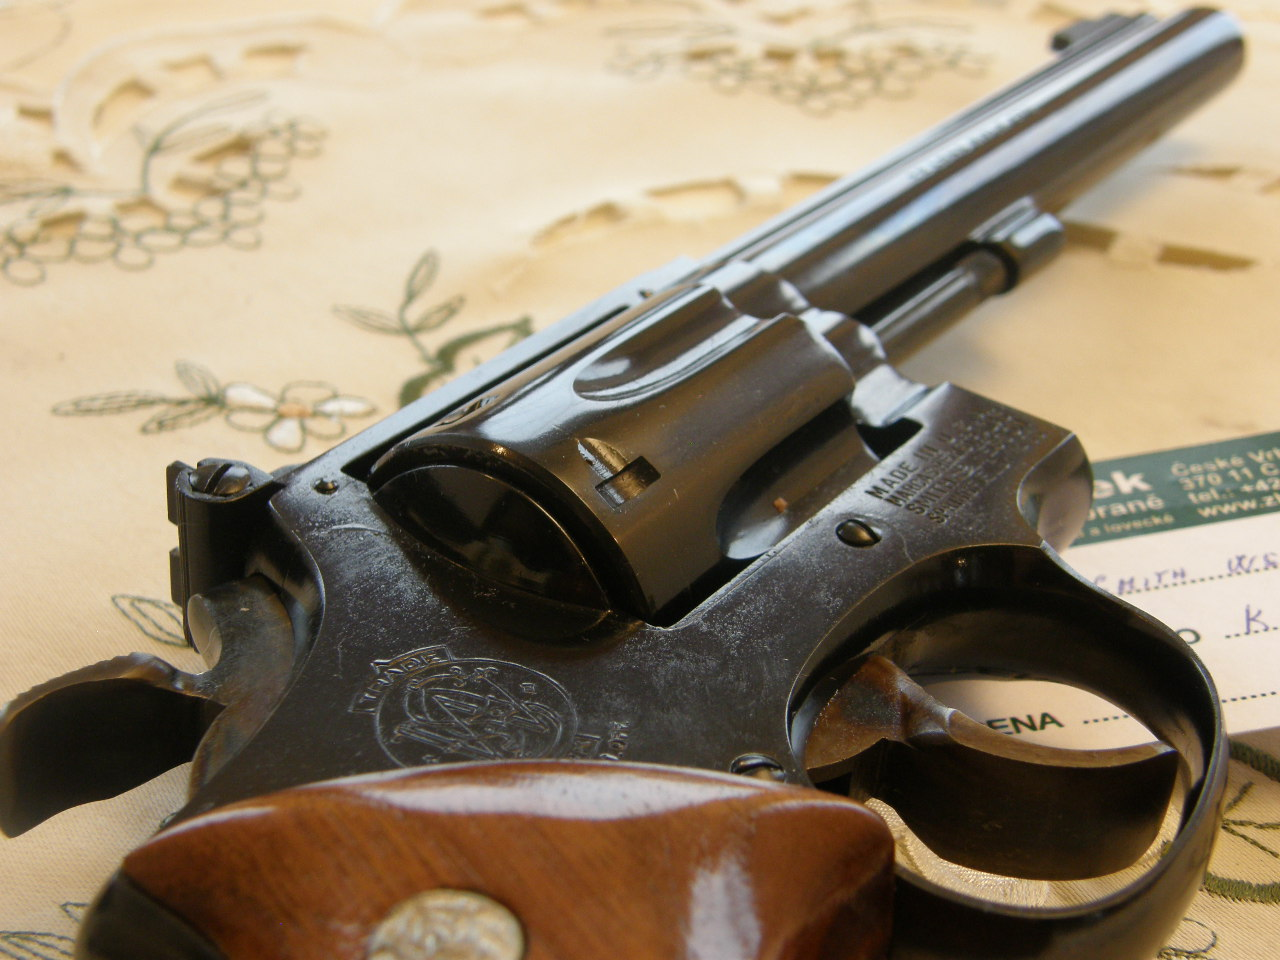 Revolver Smith Wesson Mod. 17 v.č. K702007 r. 22 Lr.